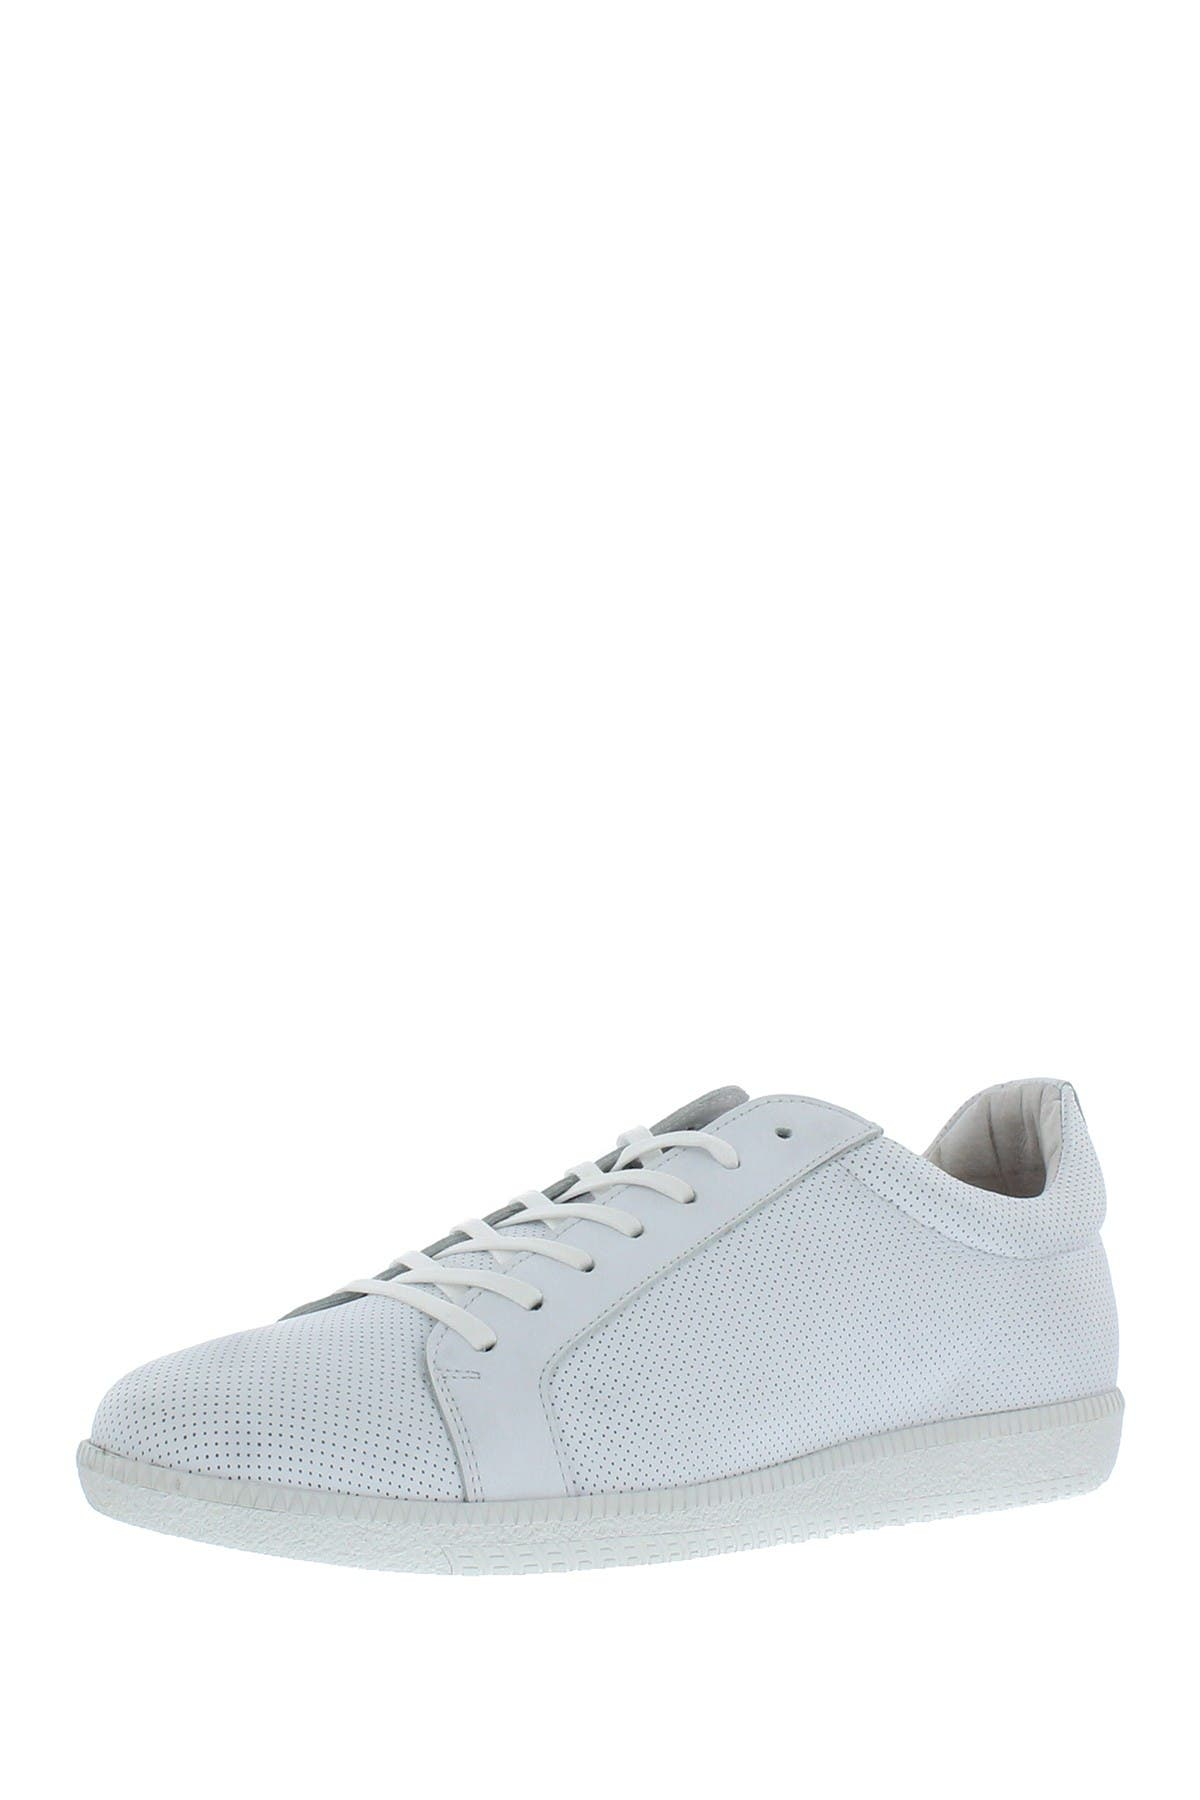 Image of SUPPLY LAB Casual Perforated Leather Sneaker